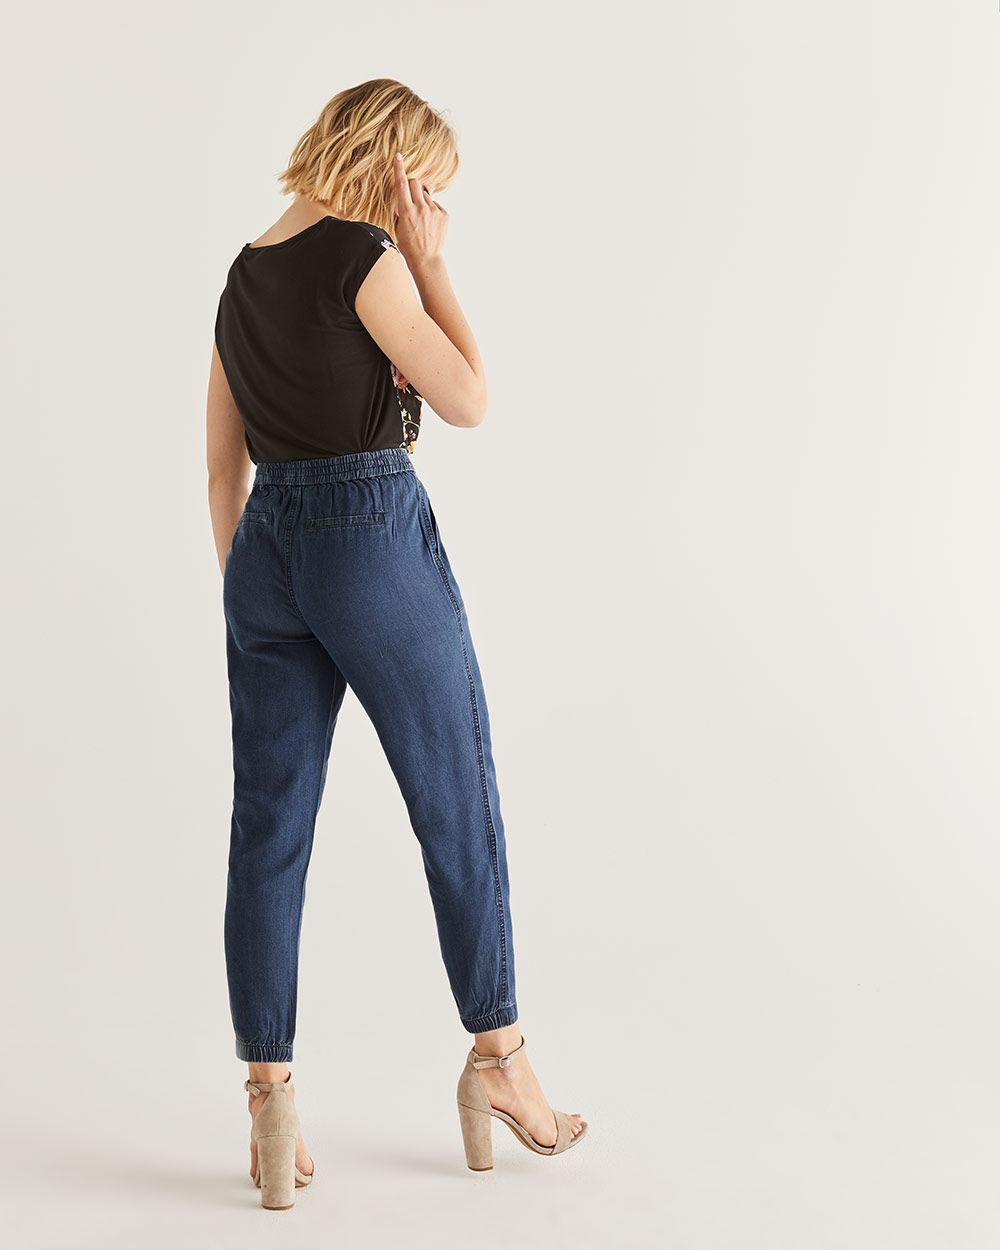 Elastic Cuffs Peg Leg Pants - Tall